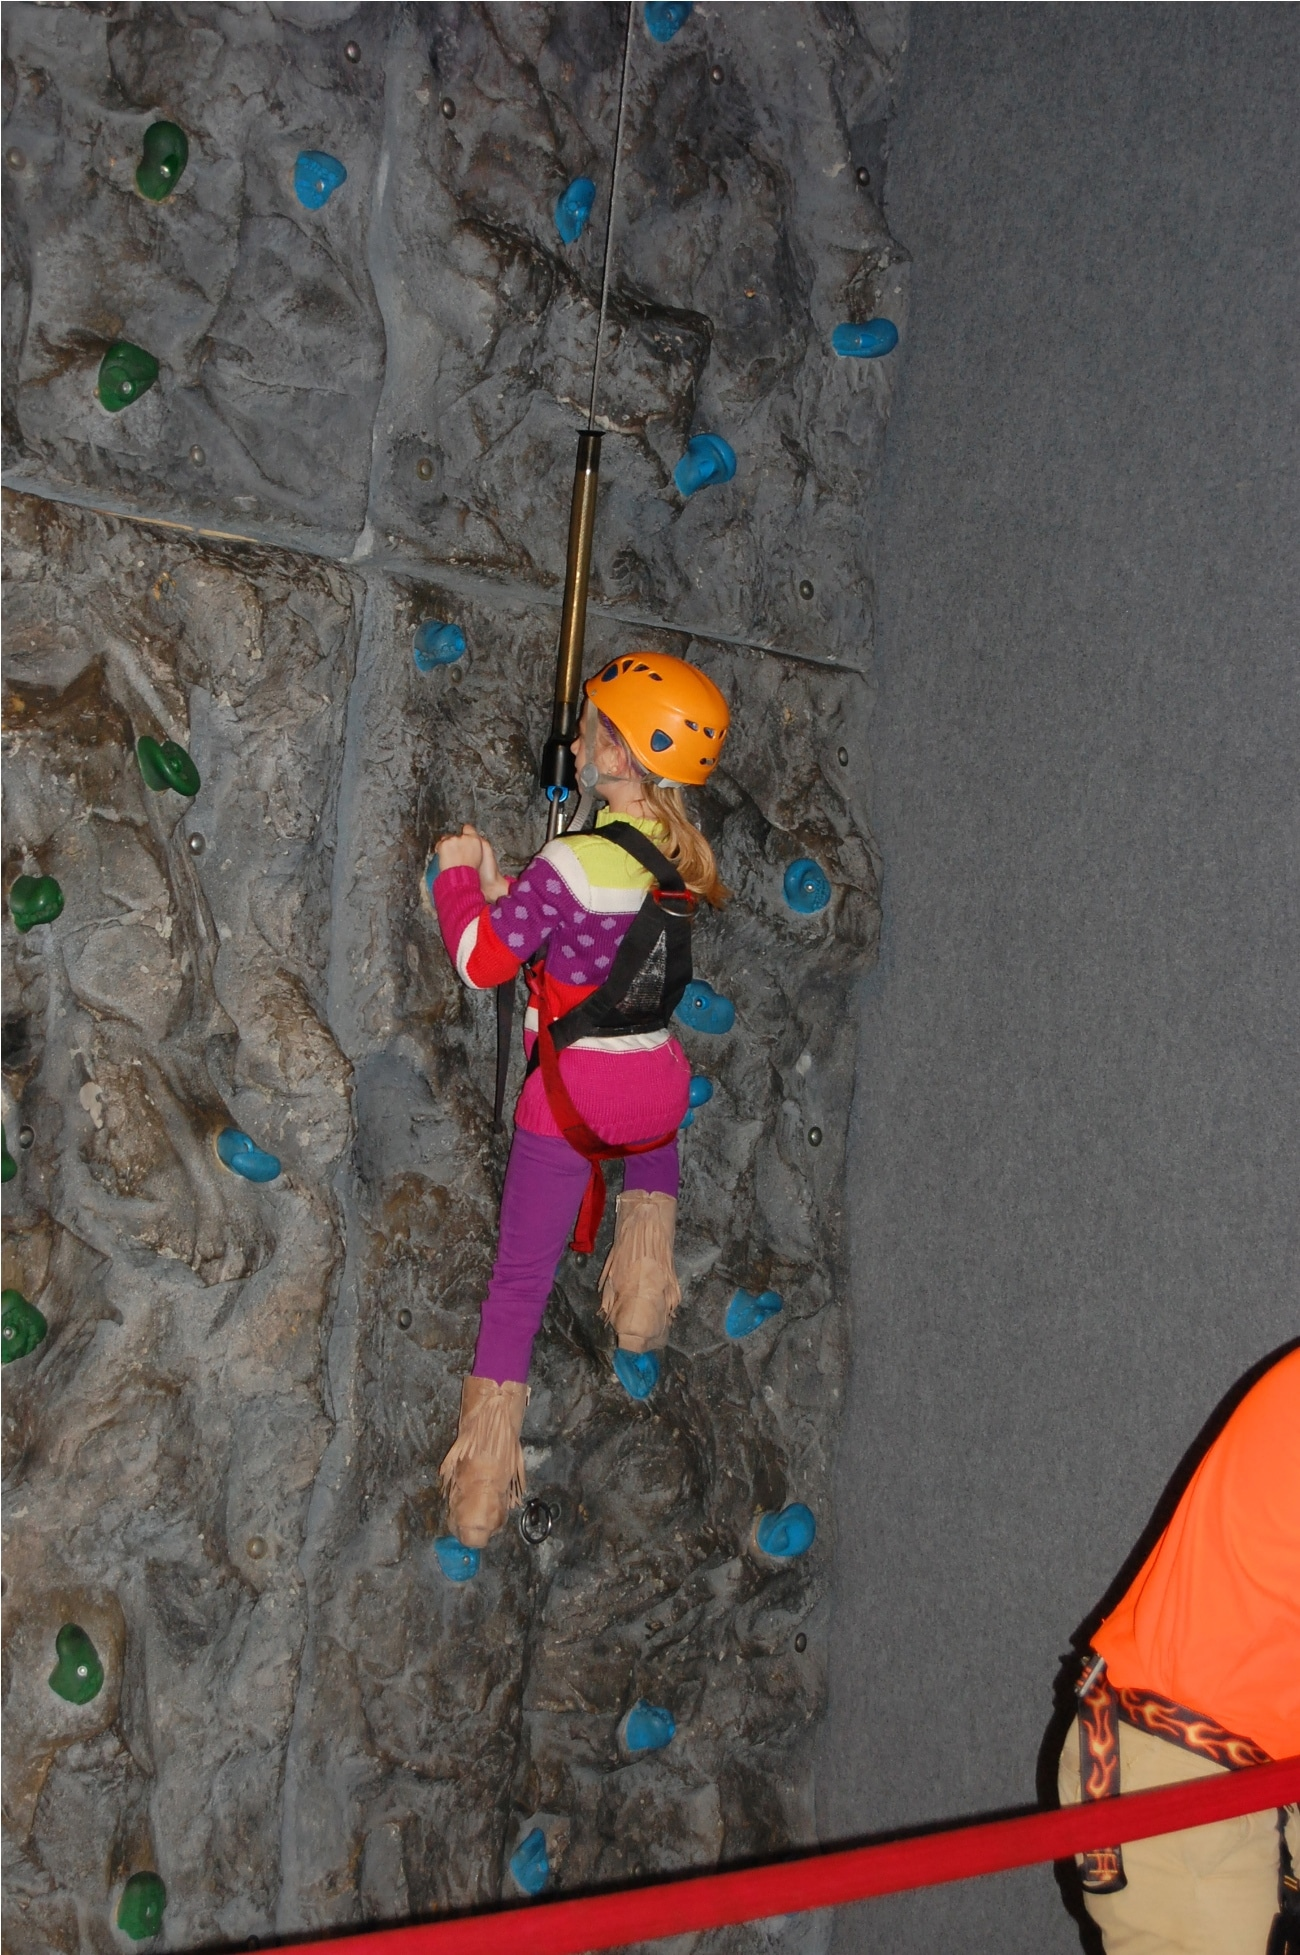 Rock Climbing at WonderWorks in Pigeon Forge